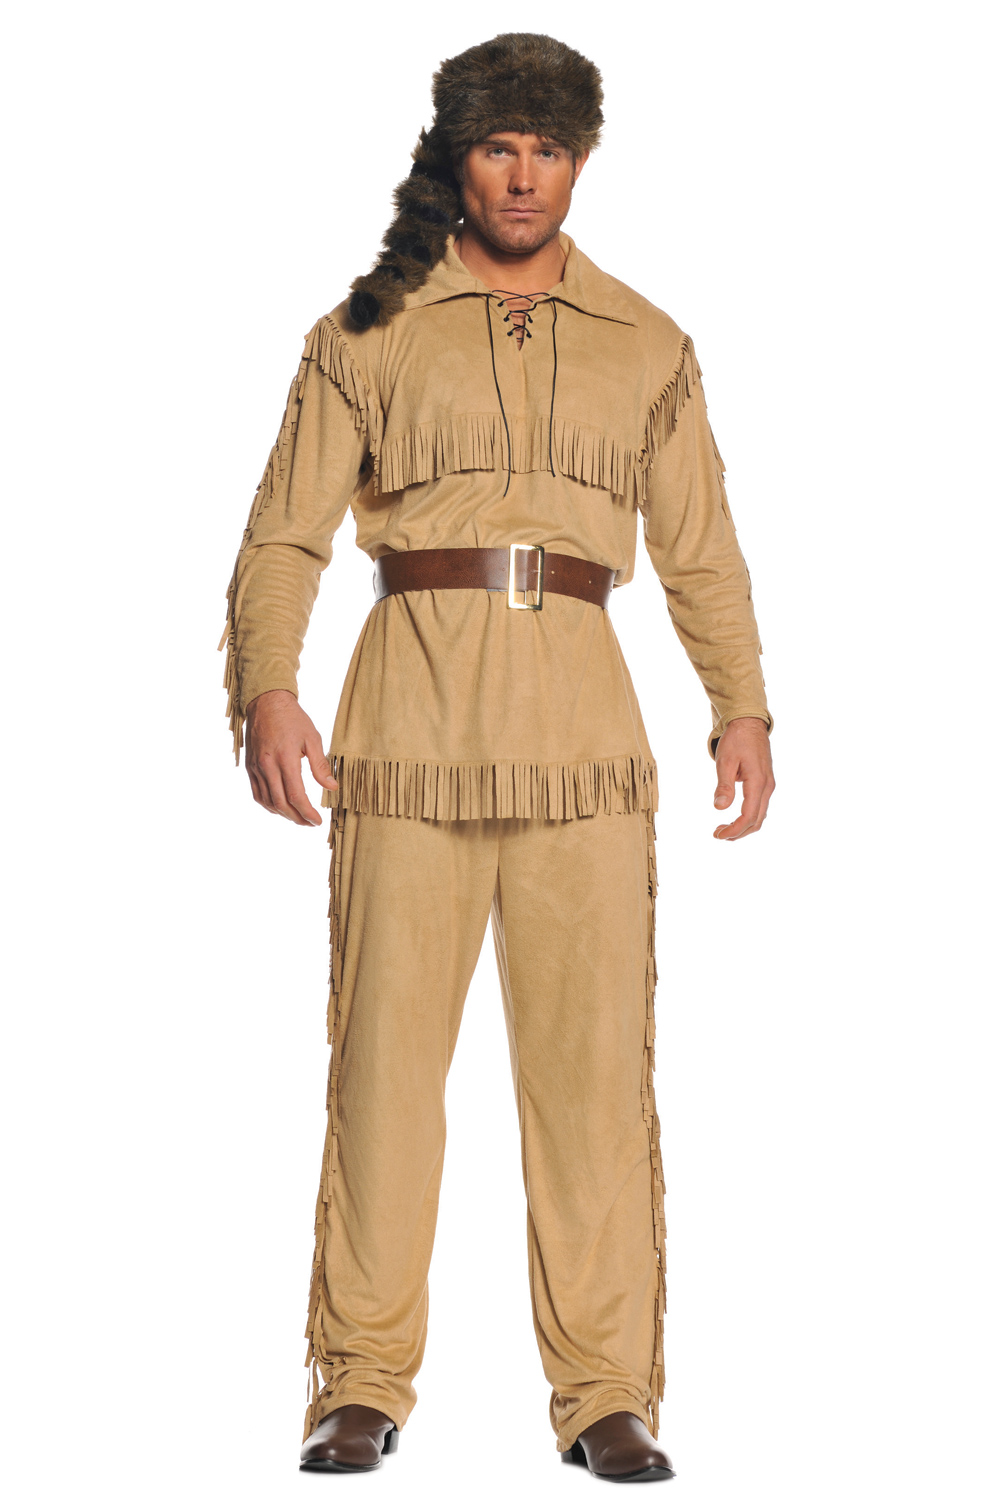 sc 1 st  Pure Costumes & Frontier Man Adult Costume - PureCostumes.com